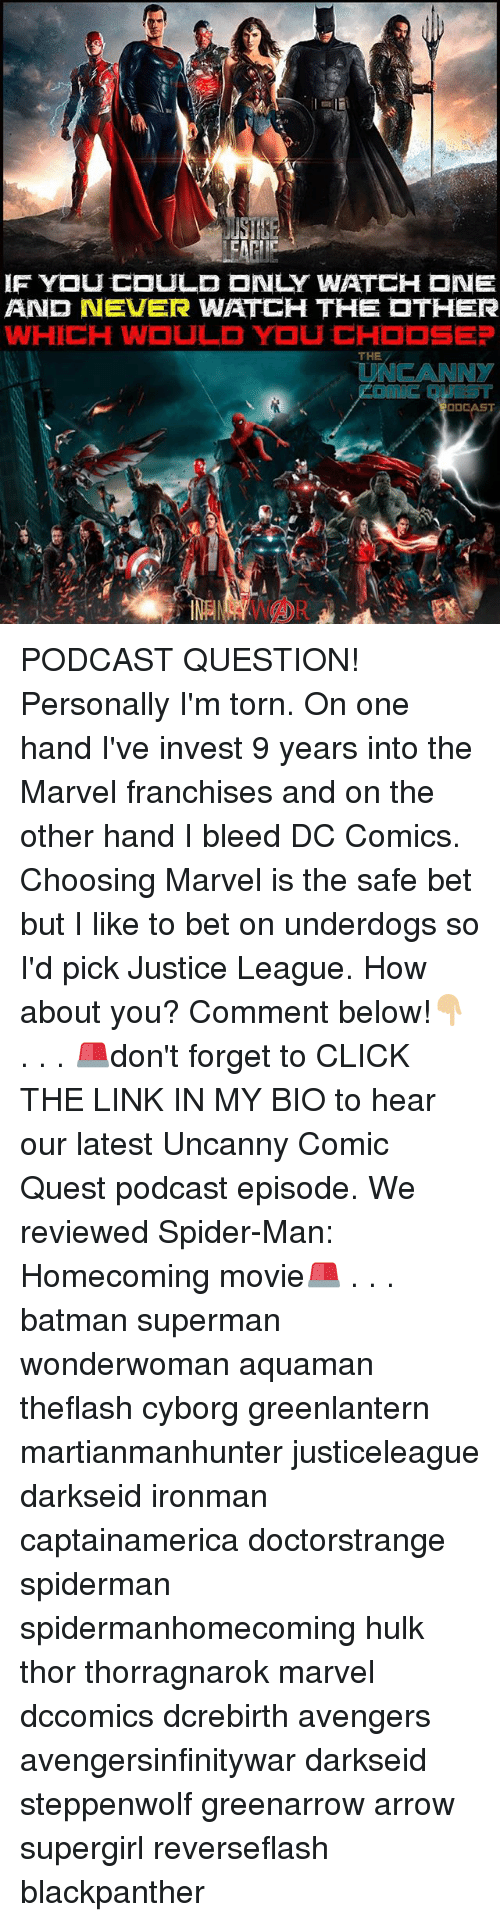 franchises: AND NEVER WATCH THE  THER  THE PODCAST QUESTION! Personally I'm torn. On one hand I've invest 9 years into the Marvel franchises and on the other hand I bleed DC Comics. Choosing Marvel is the safe bet but I like to bet on underdogs so I'd pick Justice League. How about you? Comment below!👇🏼 . . . 🚨don't forget to CLICK THE LINK IN MY BIO to hear our latest Uncanny Comic Quest podcast episode. We reviewed Spider-Man: Homecoming movie🚨 . . . batman superman wonderwoman aquaman theflash cyborg greenlantern martianmanhunter justiceleague darkseid ironman captainamerica doctorstrange spiderman spidermanhomecoming hulk thor thorragnarok marvel dccomics dcrebirth avengers avengersinfinitywar darkseid steppenwolf greenarrow arrow supergirl reverseflash blackpanther